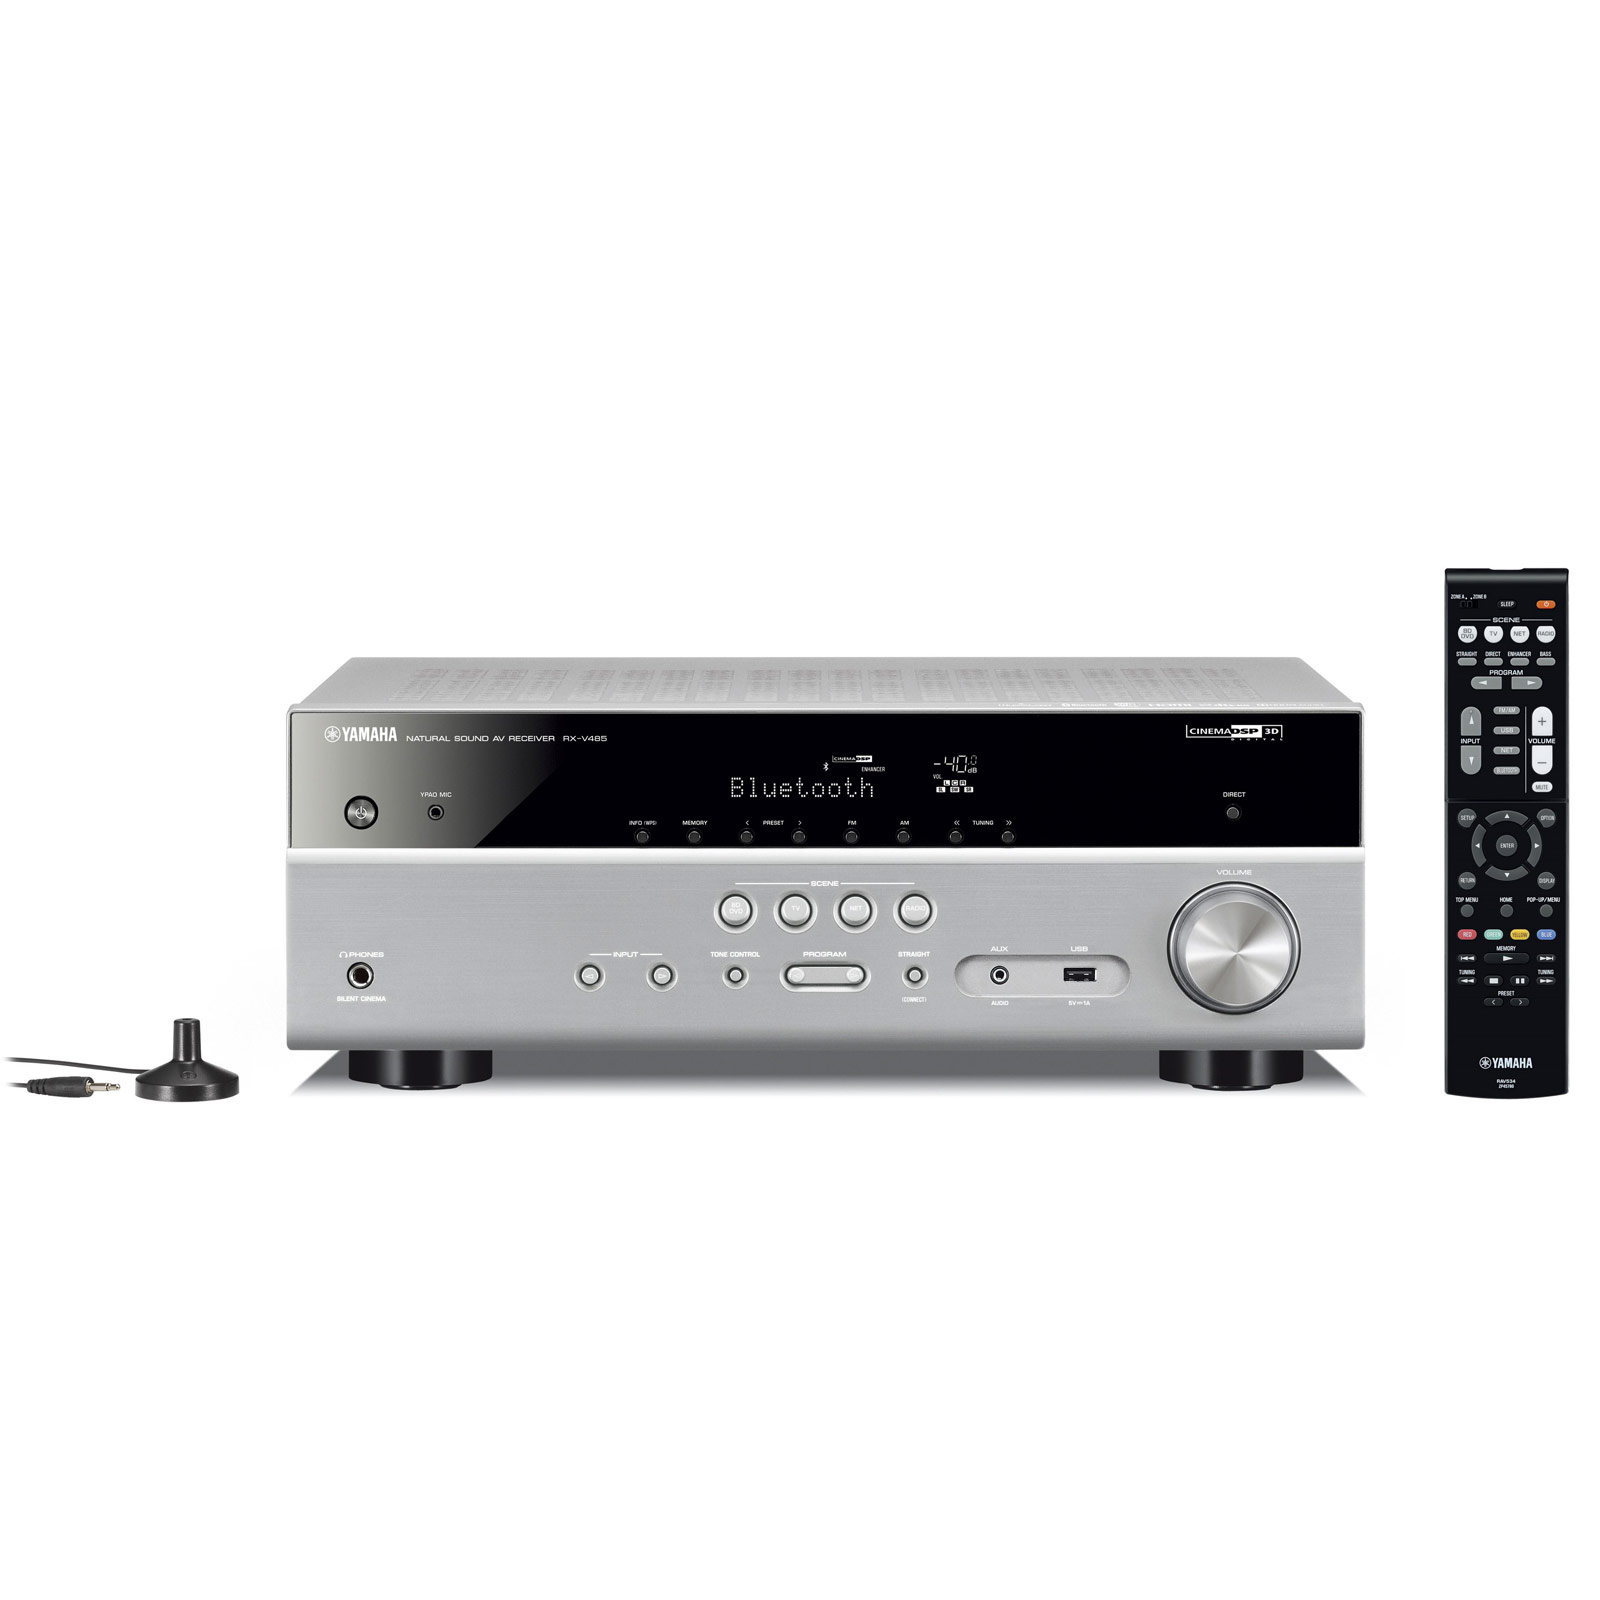 Ampli home cinéma Yamaha RX-V485 Titane Ampli-tuner Home Cinéma 5.1 3D 80 Watts/canal - Dolby TrueHD / DTS-HD Master Audio - 4 entrées HDMI 2.0 HDCP 2.2 - HDR 10/Dolby Vision/HLG - Bluetooth/Wi-Fi/AirPlay - MusicCast - Calibration YPAO